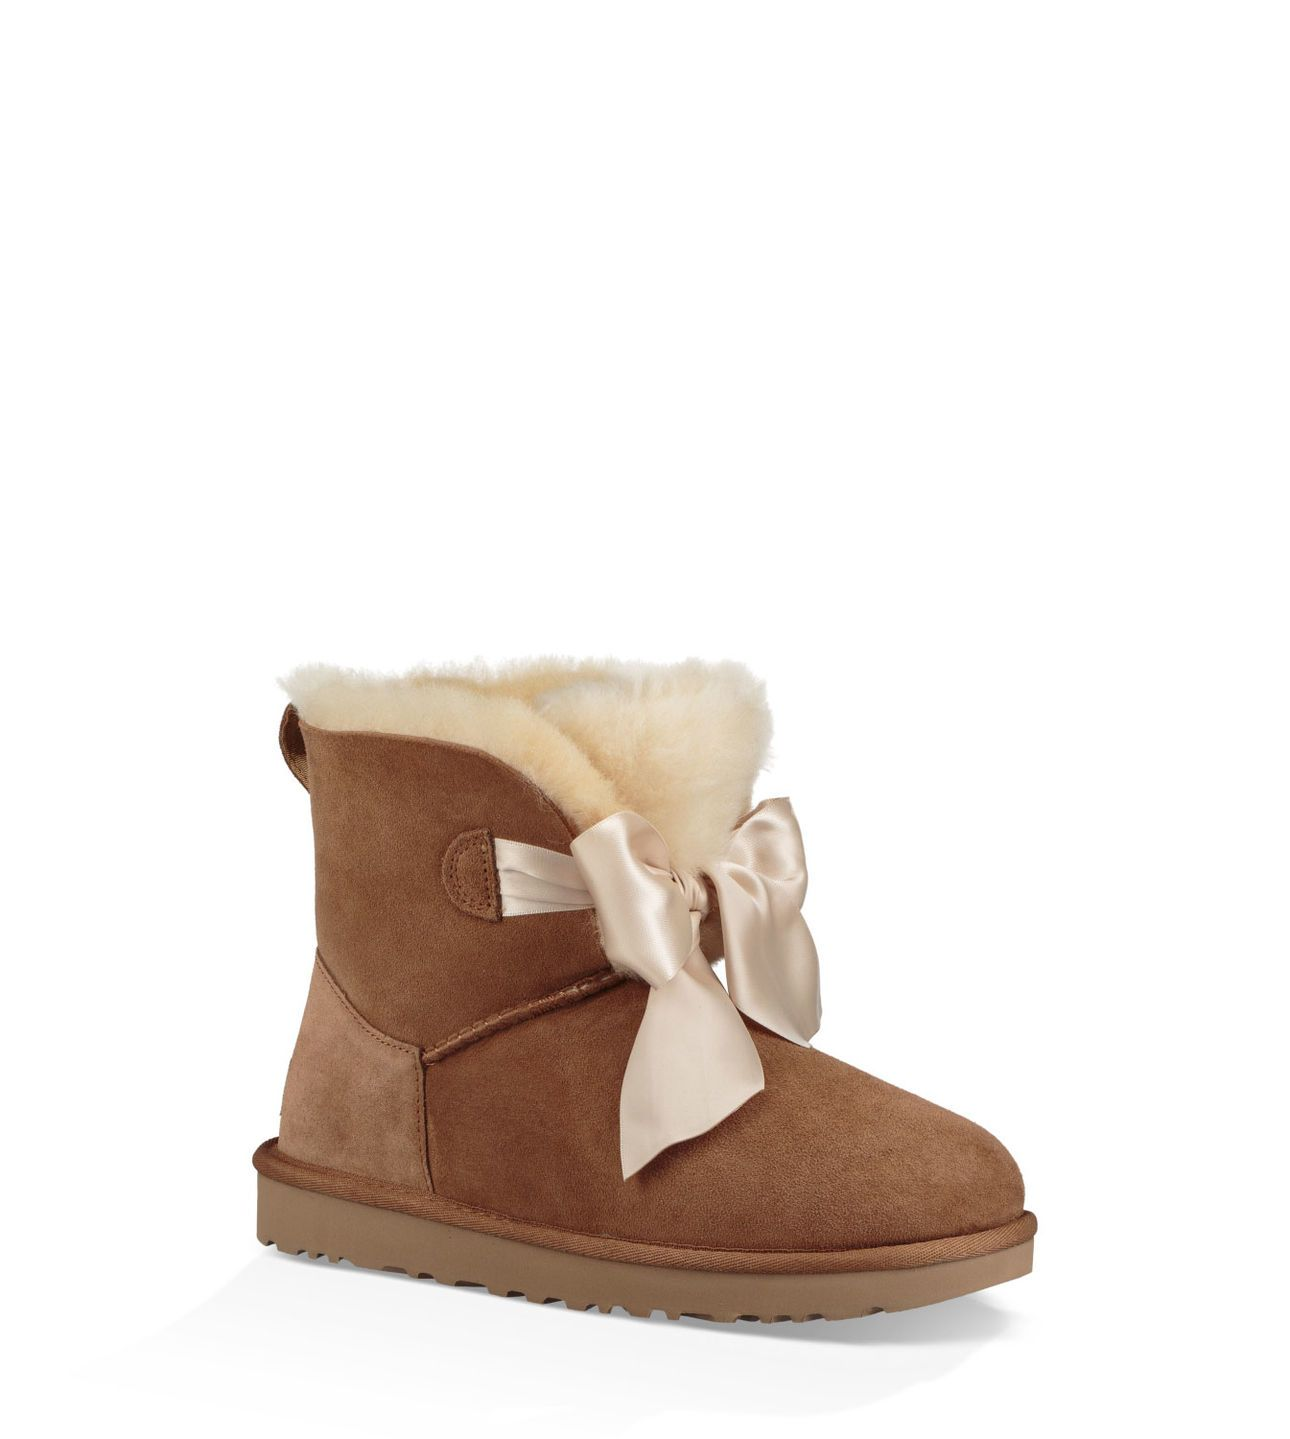 86a0d14536e Women's Share this product Gita Bow Mini Boot | Shoes♡ | Kids ugg ...